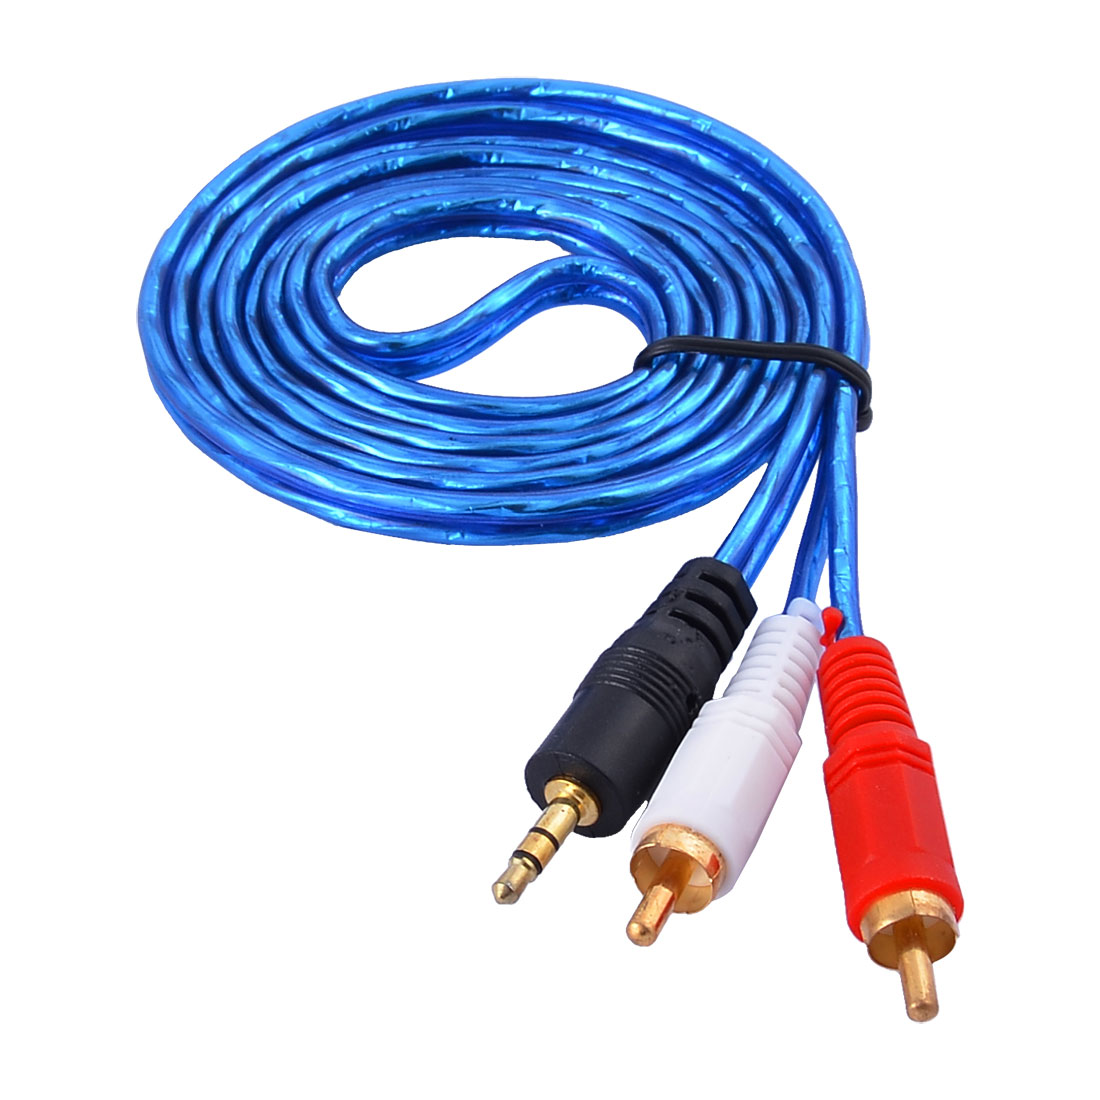 1.5M Long 3.5mm Male to 2 RCA Male Plug Stereo MP3 Player Audio Cable Blue - image 1 of 1